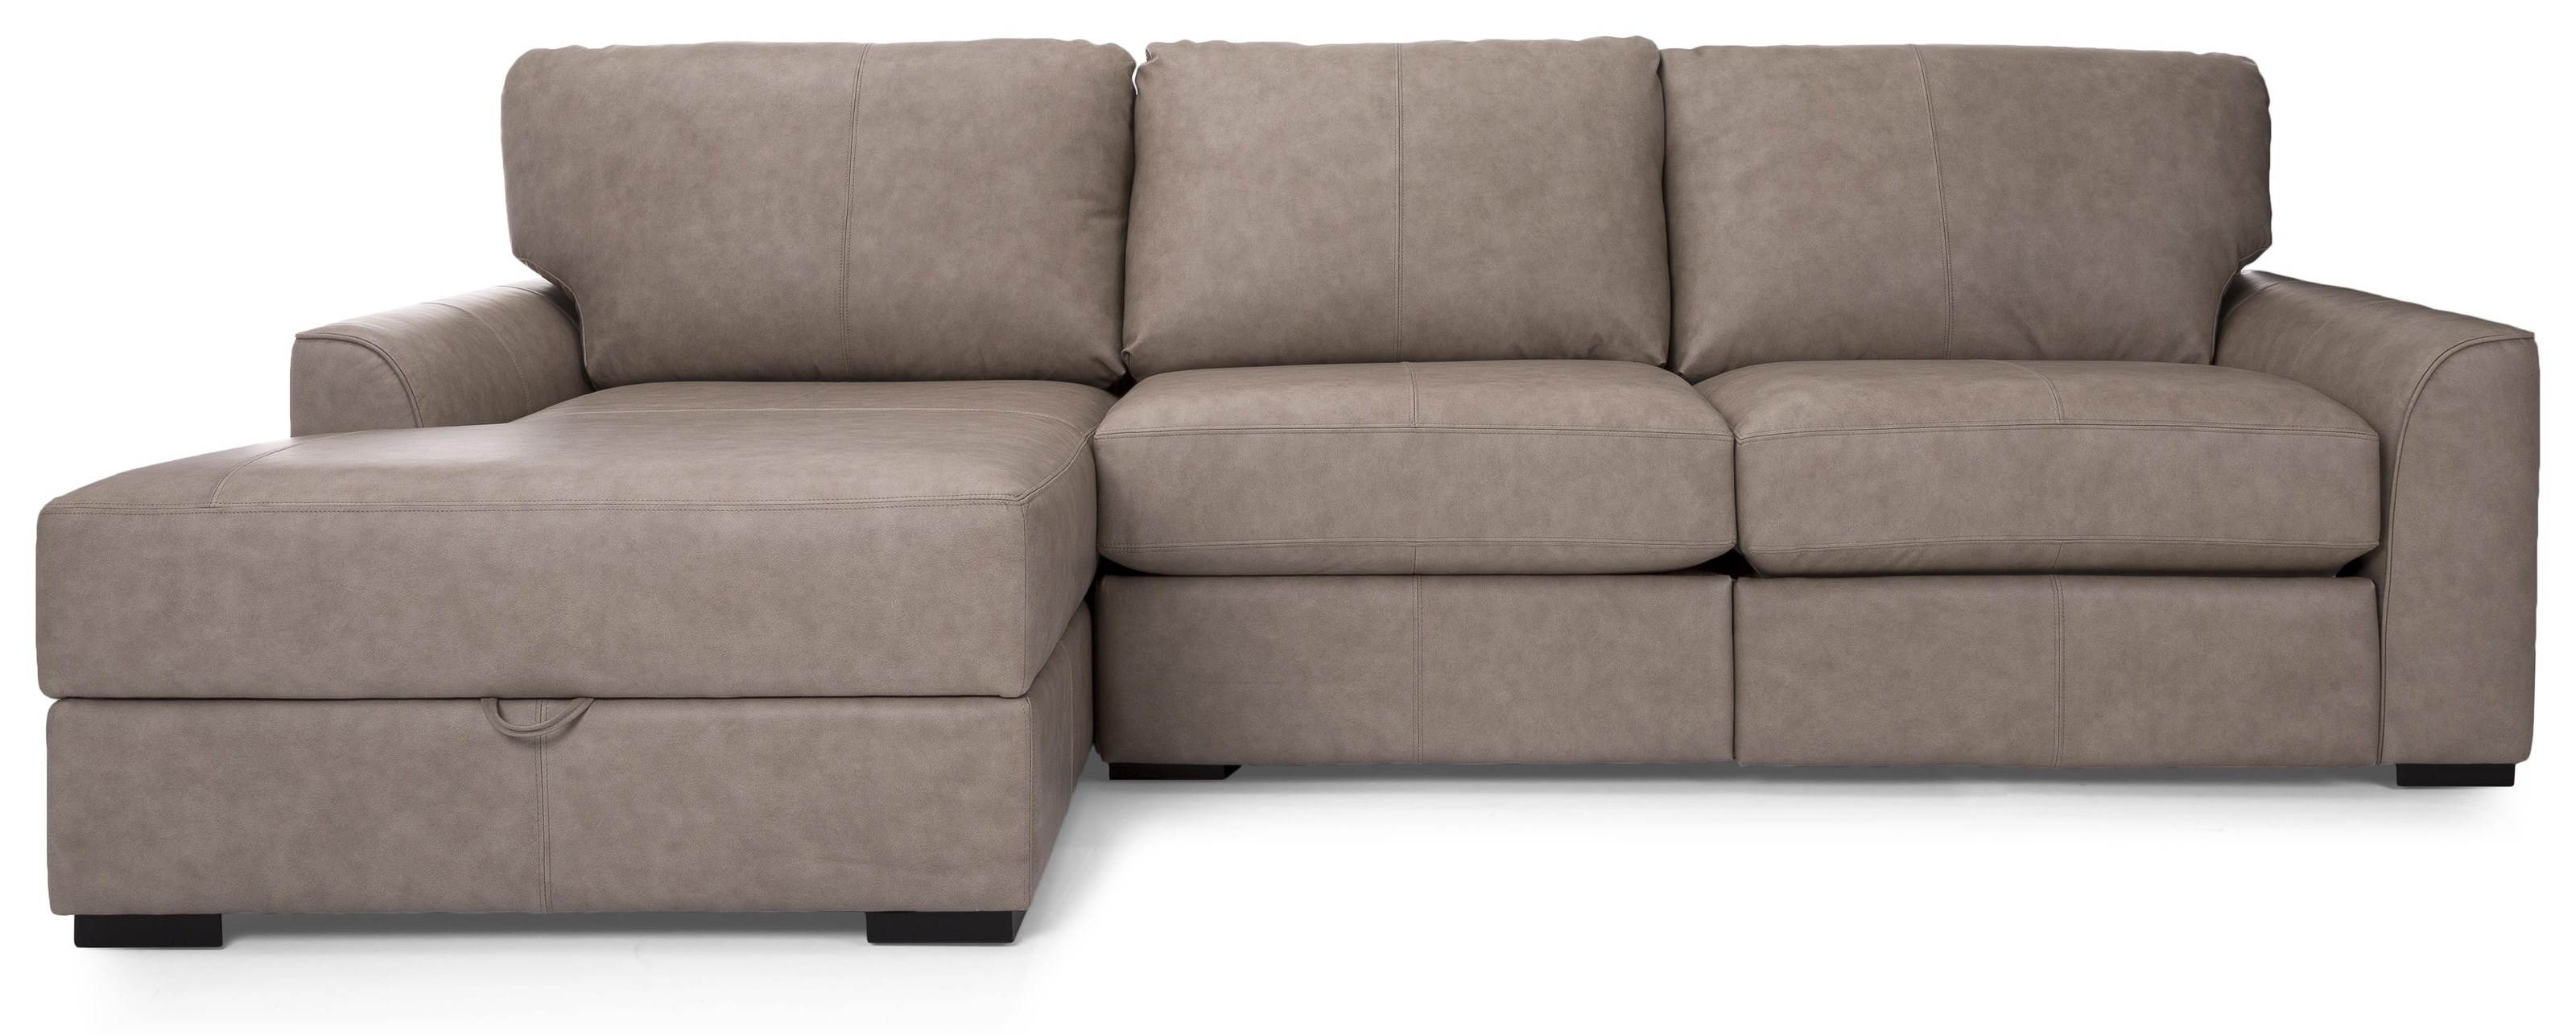 Mika Leather Sectional by Taelor Designs at Bennett's Furniture and Mattresses